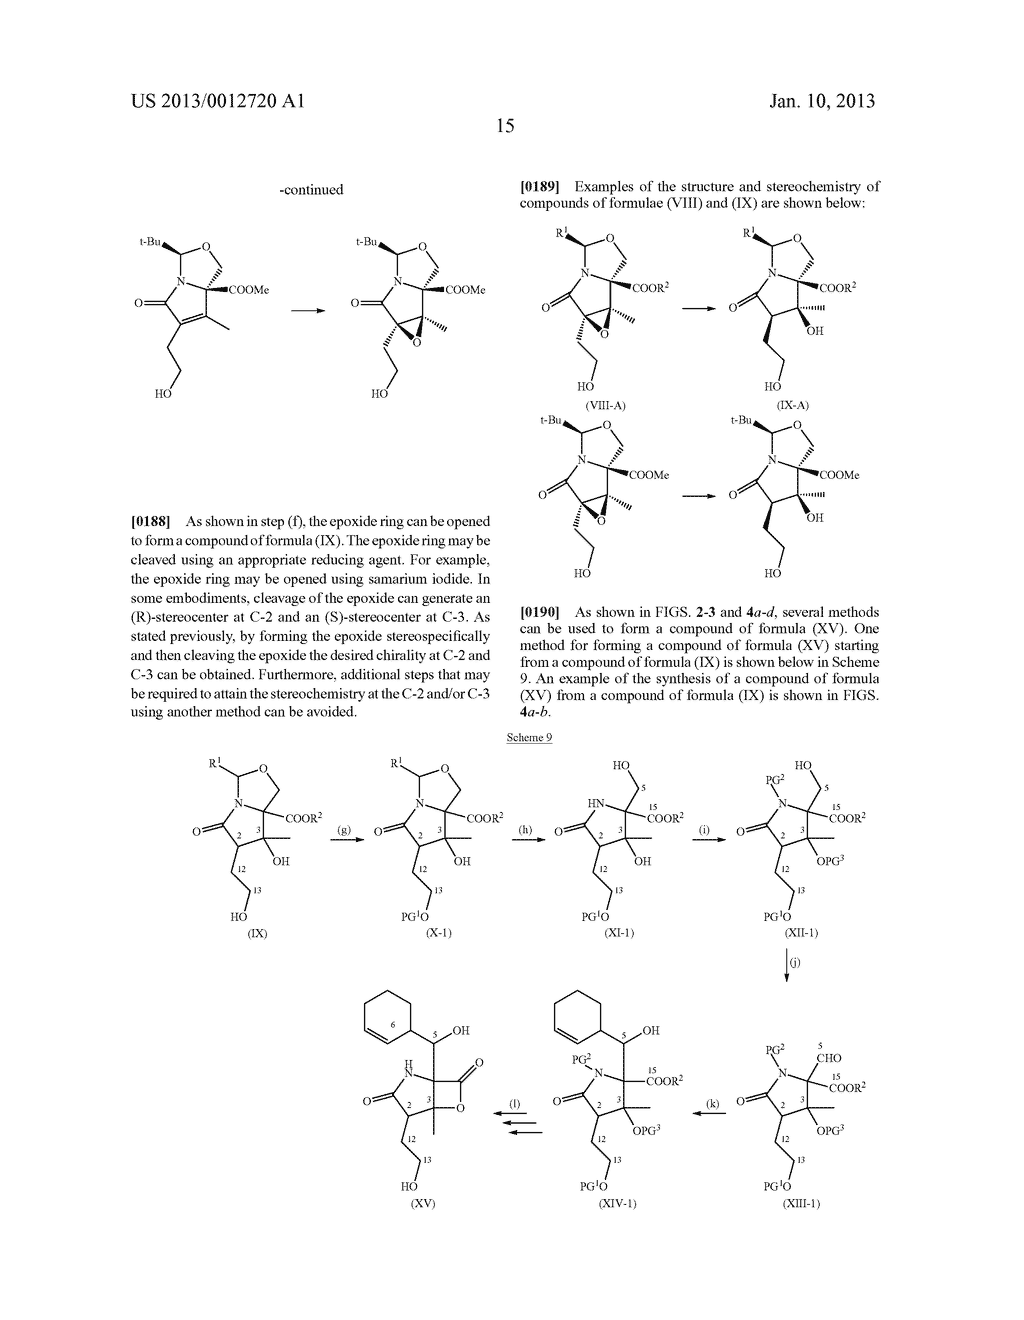 TOTAL SYNTHESIS OF SALINOSPORAMIDE A AND ANALOGS THEREOF - diagram, schematic, and image 77